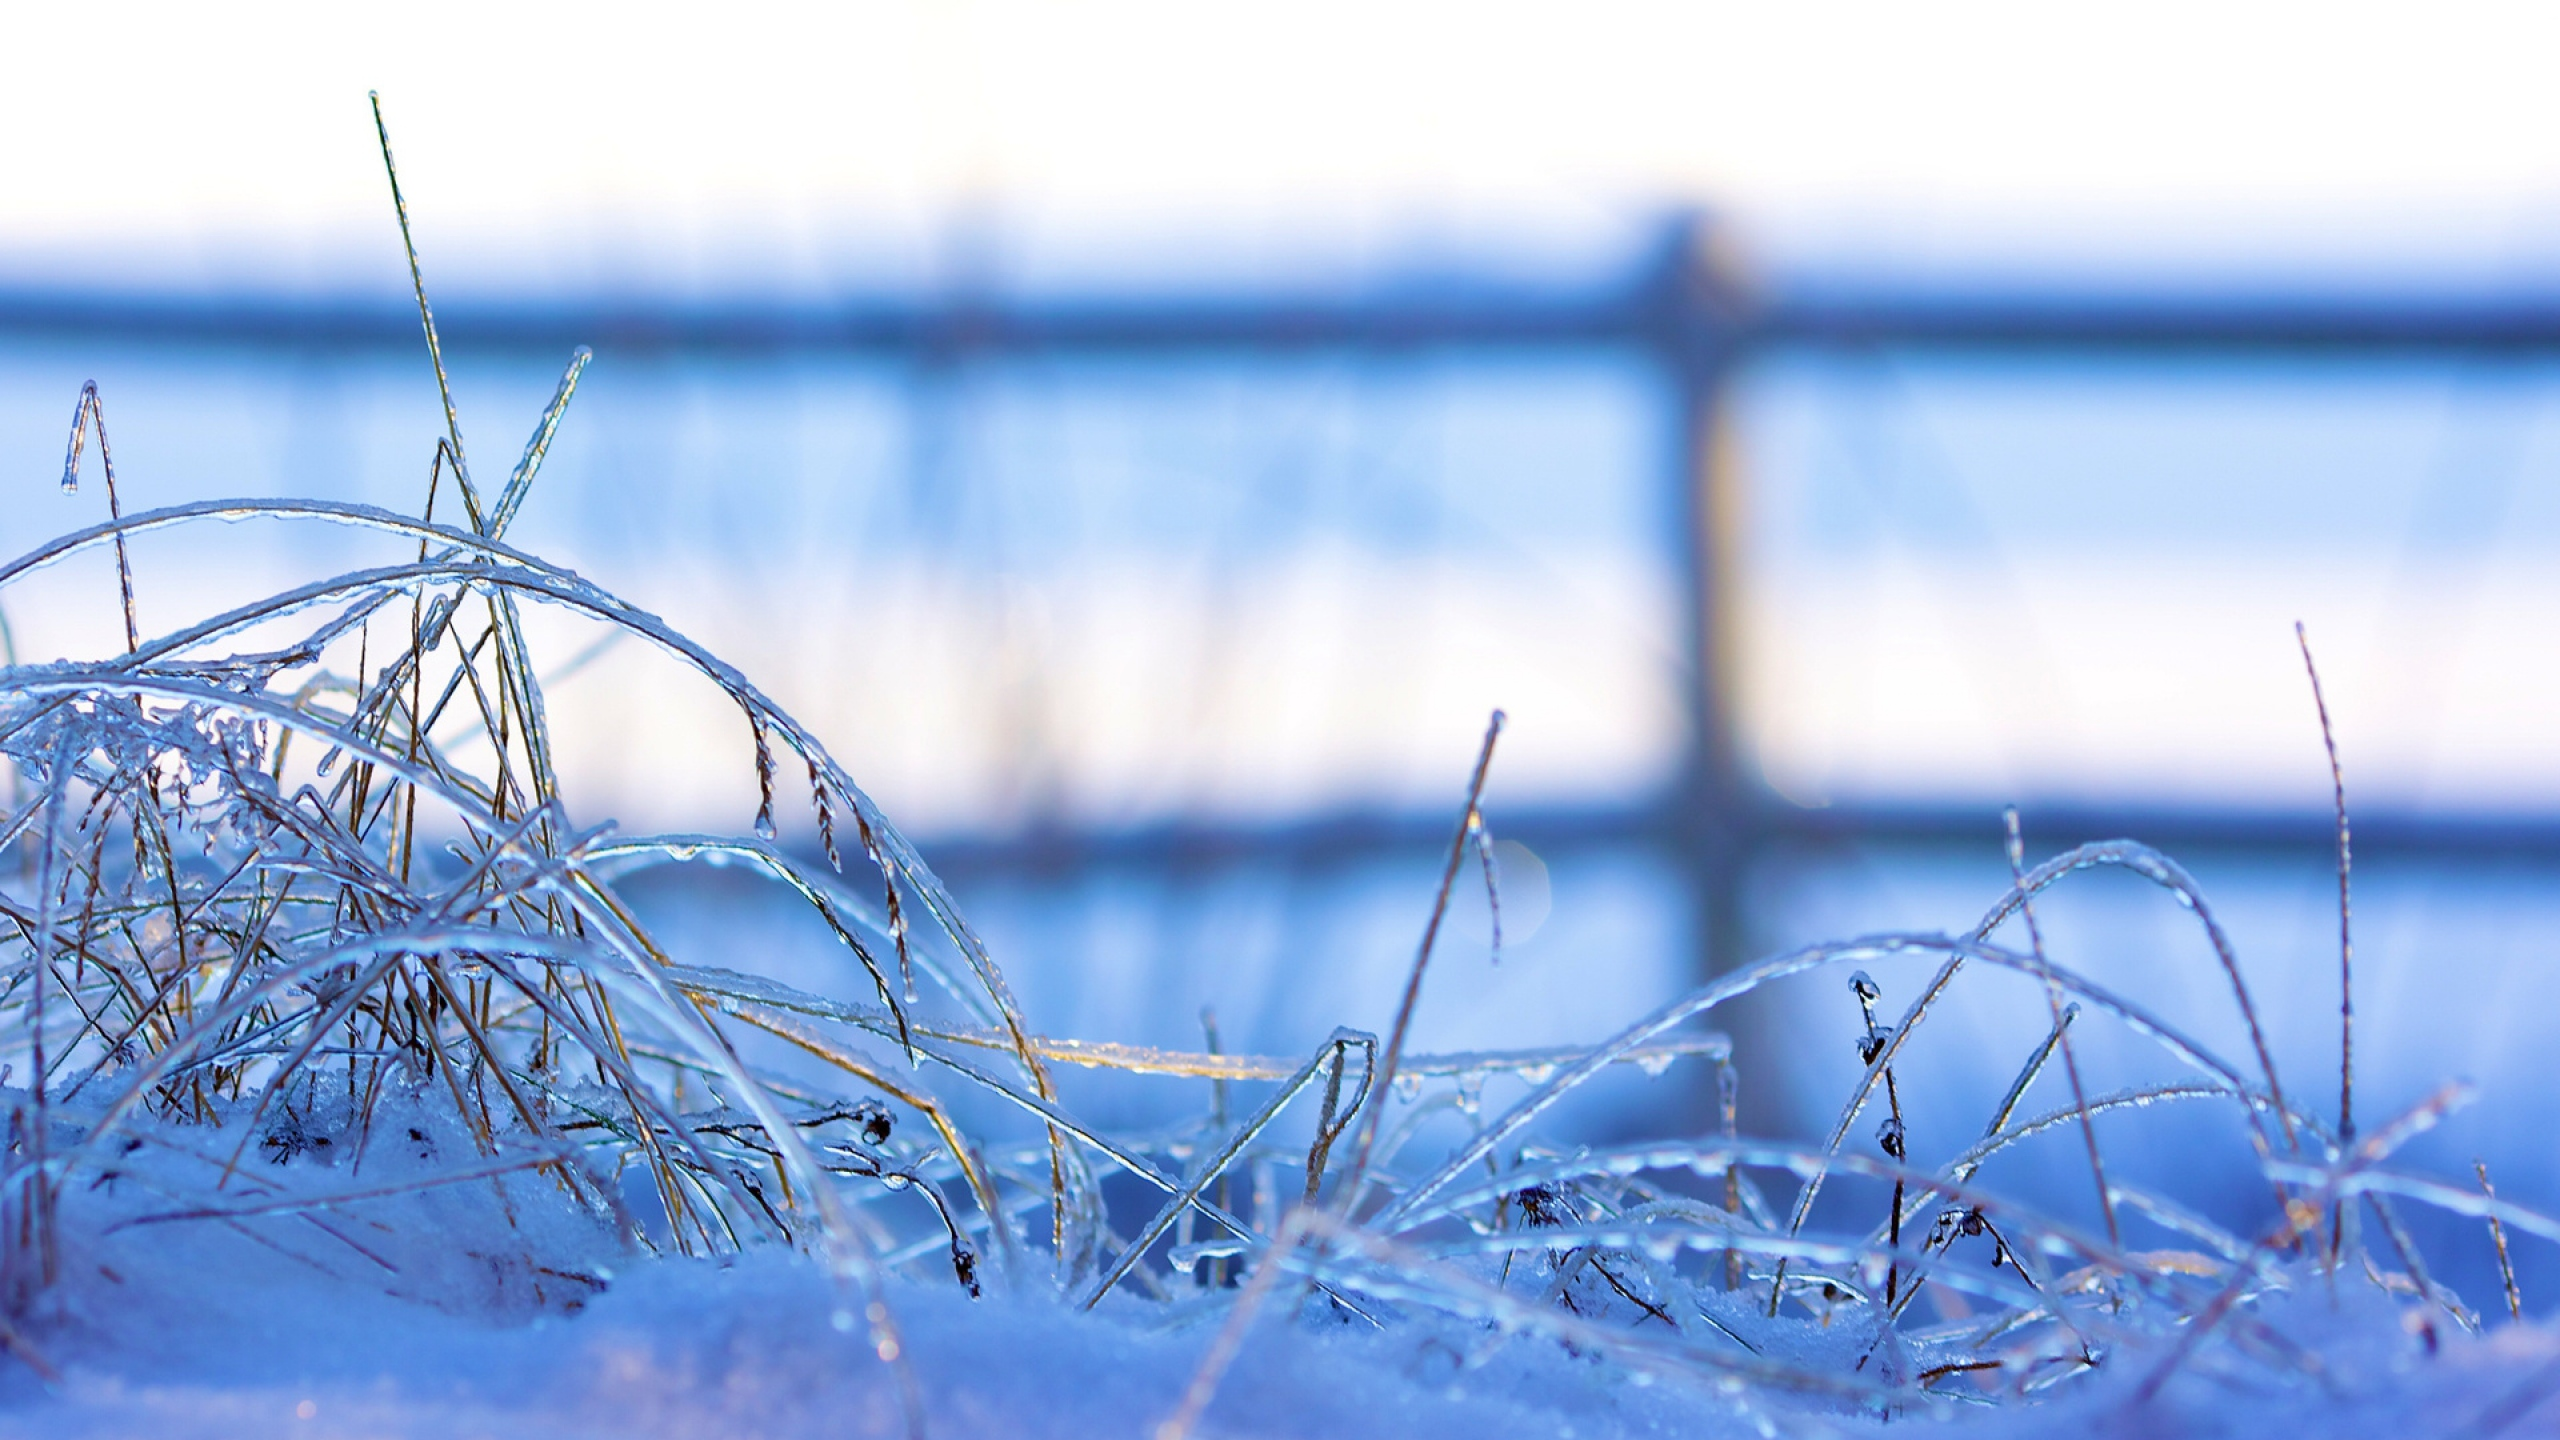 Frozen Backgrounds Free Download